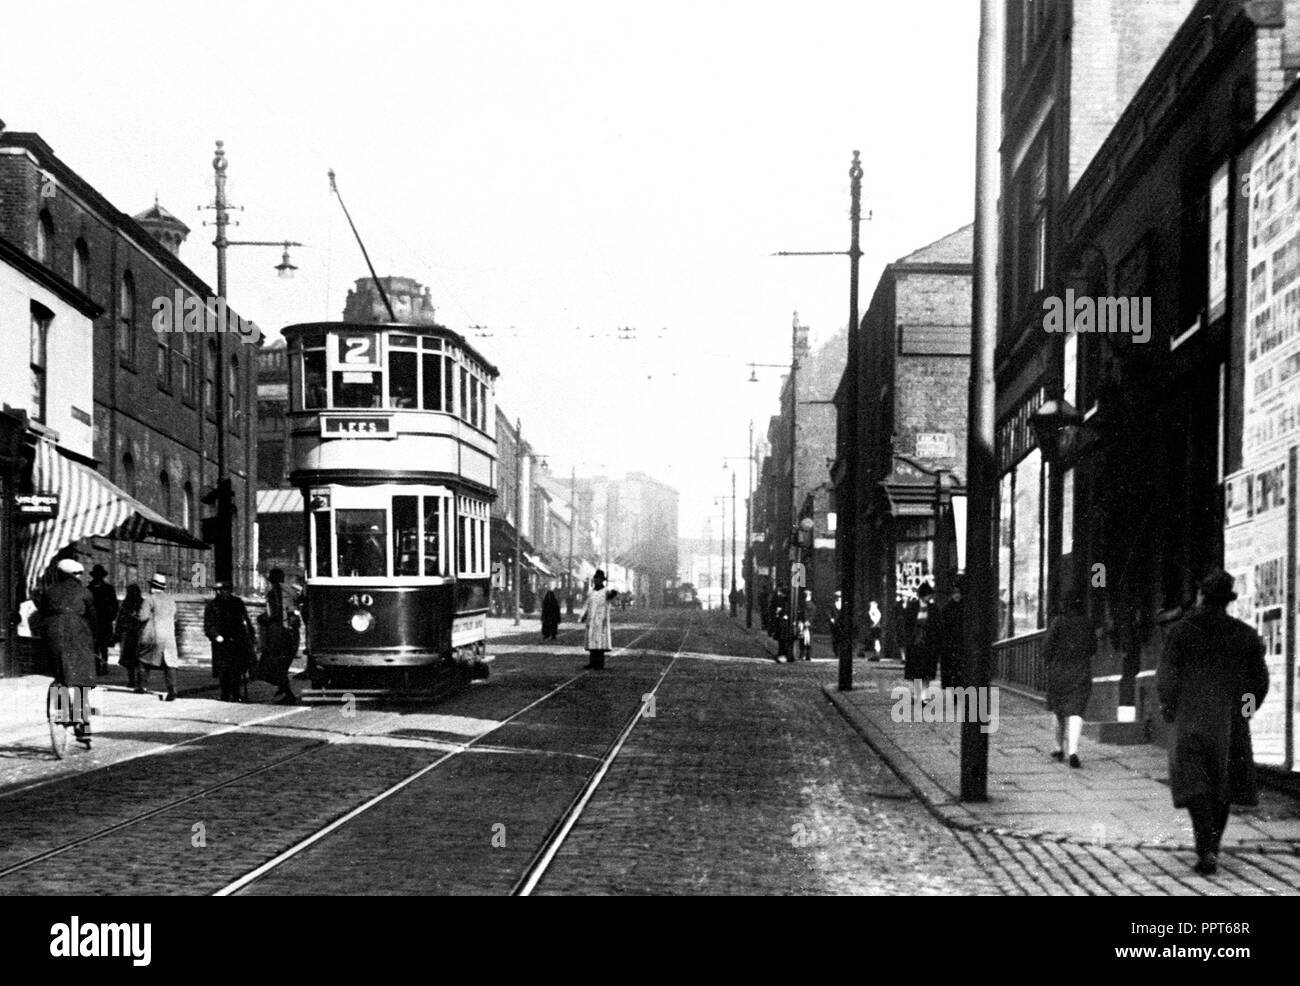 Manchester Street, Oldham early 1900's - Stock Image